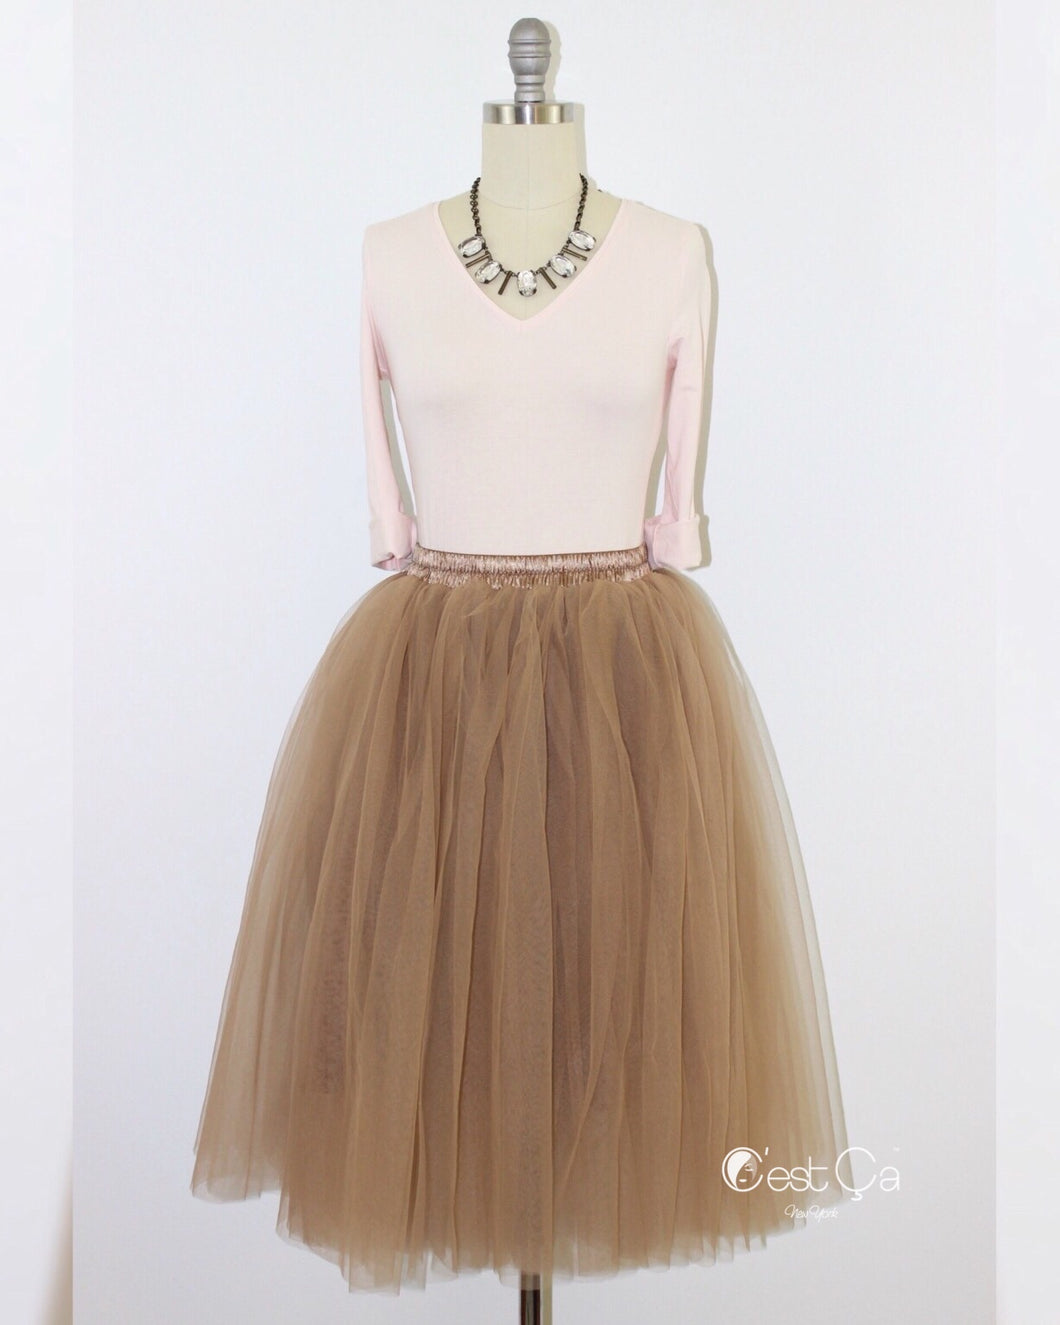 Colette Premium Light Coffee Soft Tulle Skirt - Midi - C'est Ça New York